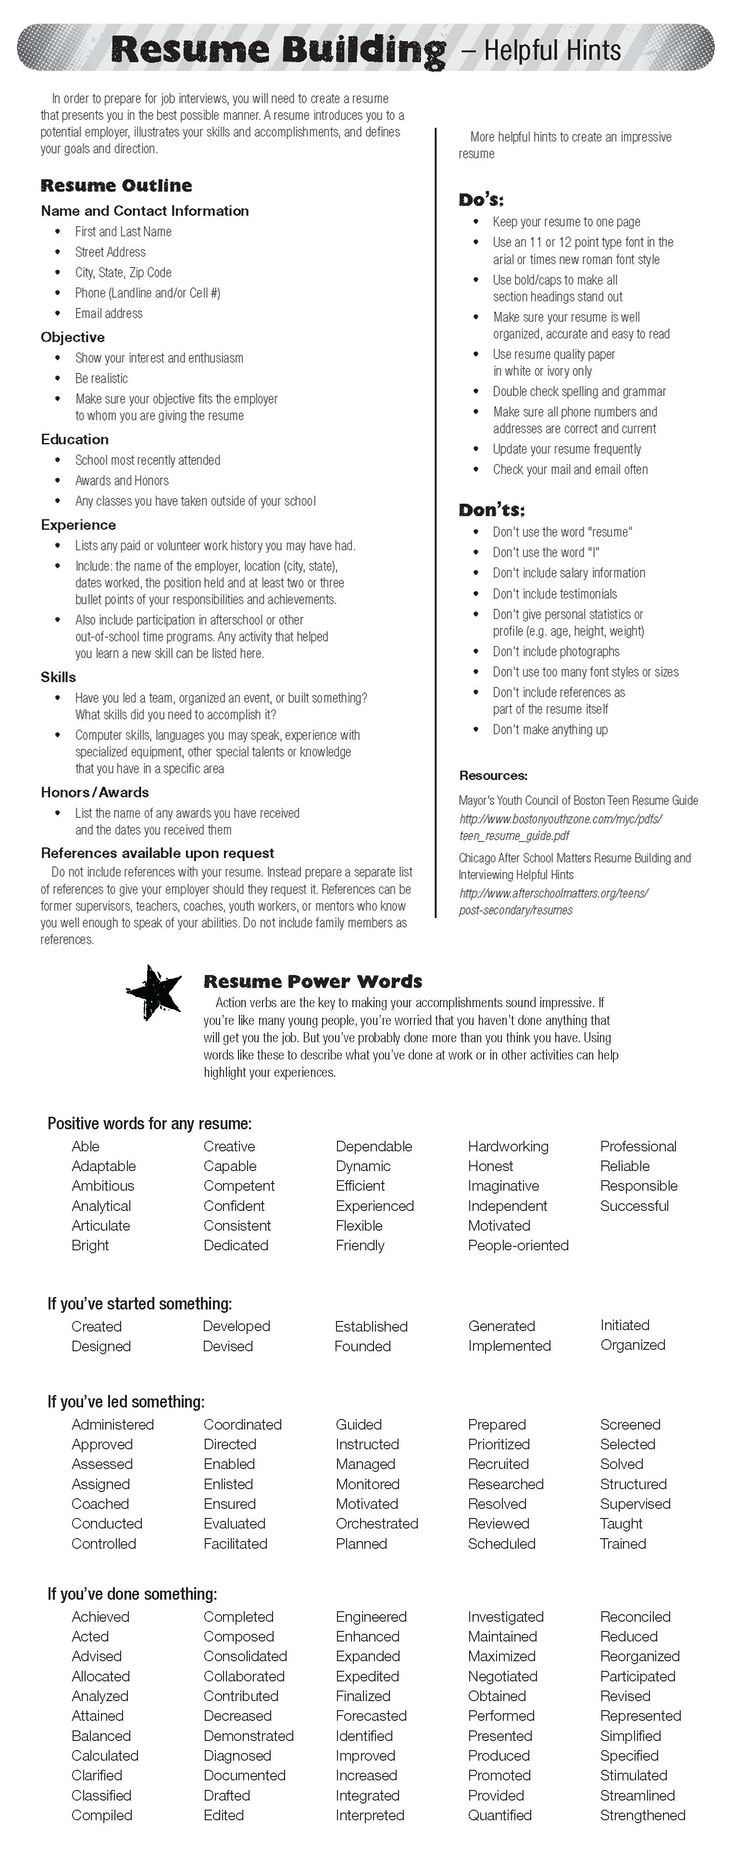 Picnictoimpeachus  Gorgeous  Ideas About Resume On Pinterest  Cv Format Resume Cv And  With Interesting  Ideas About Resume On Pinterest  Cv Format Resume Cv And Resume Templates With Cool Best Free Online Resume Builder Also Resume Create In Addition Sales Management Resume And Resume Builder For Military As Well As It Support Specialist Resume Additionally Psychology Resume Sample From Pinterestcom With Picnictoimpeachus  Interesting  Ideas About Resume On Pinterest  Cv Format Resume Cv And  With Cool  Ideas About Resume On Pinterest  Cv Format Resume Cv And Resume Templates And Gorgeous Best Free Online Resume Builder Also Resume Create In Addition Sales Management Resume From Pinterestcom